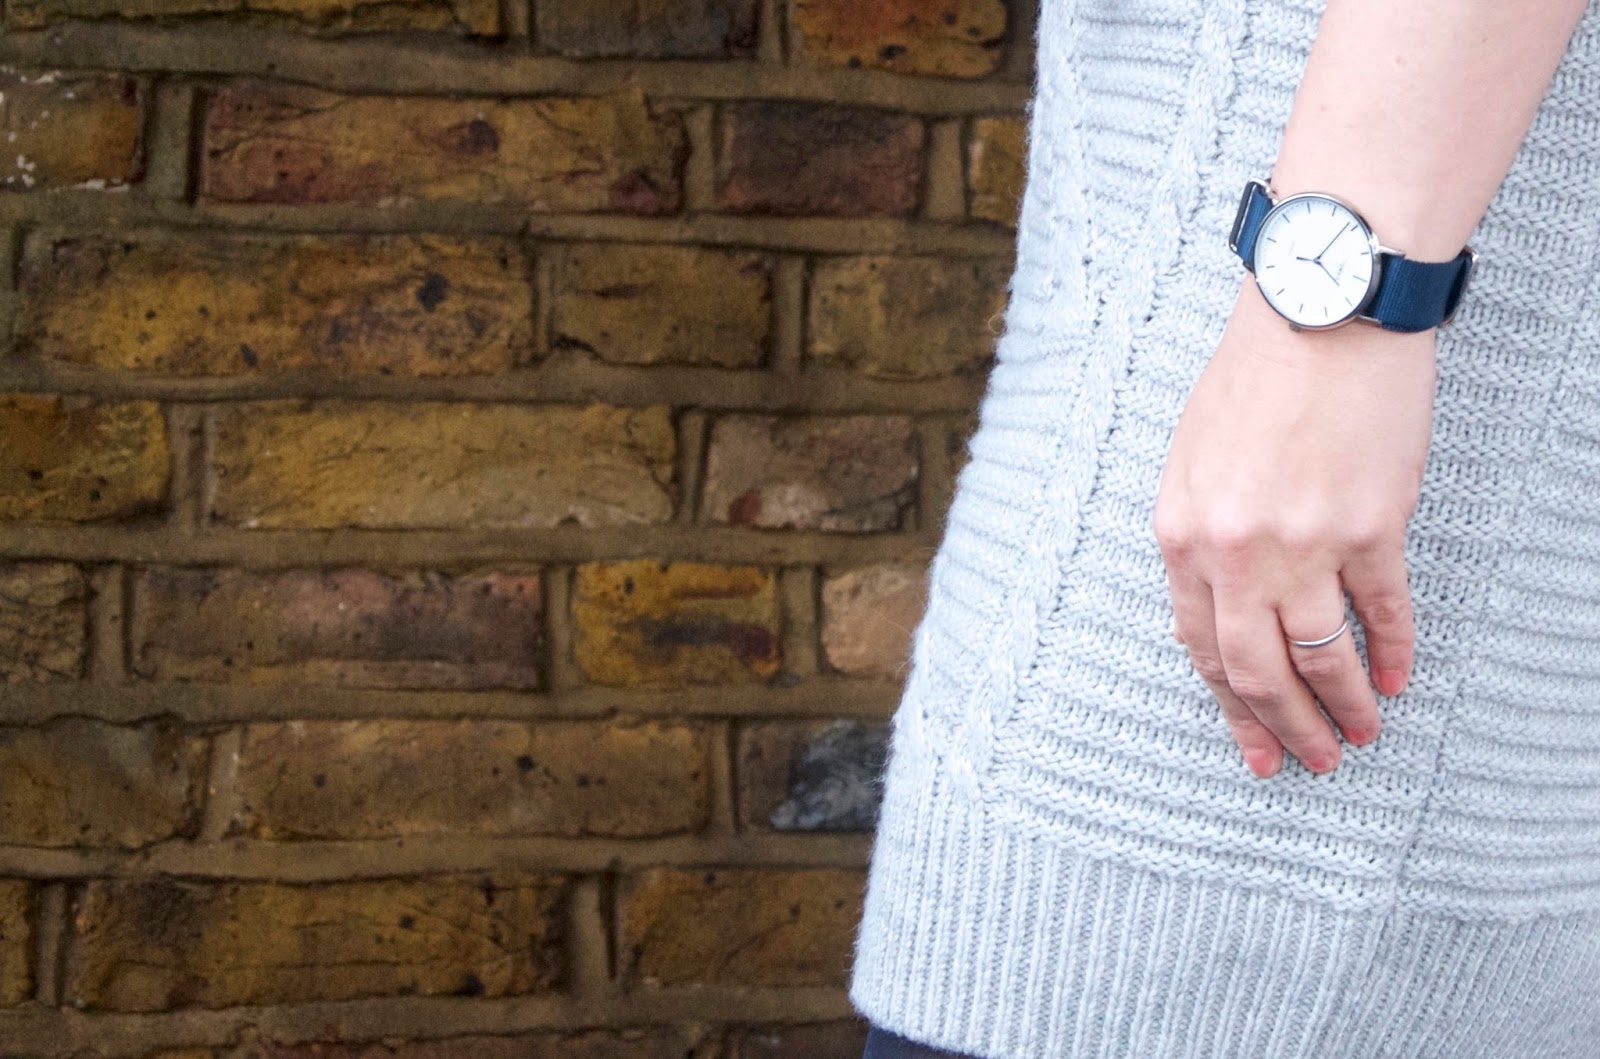 navy & silver timex watch, gray knit dress and brick wall